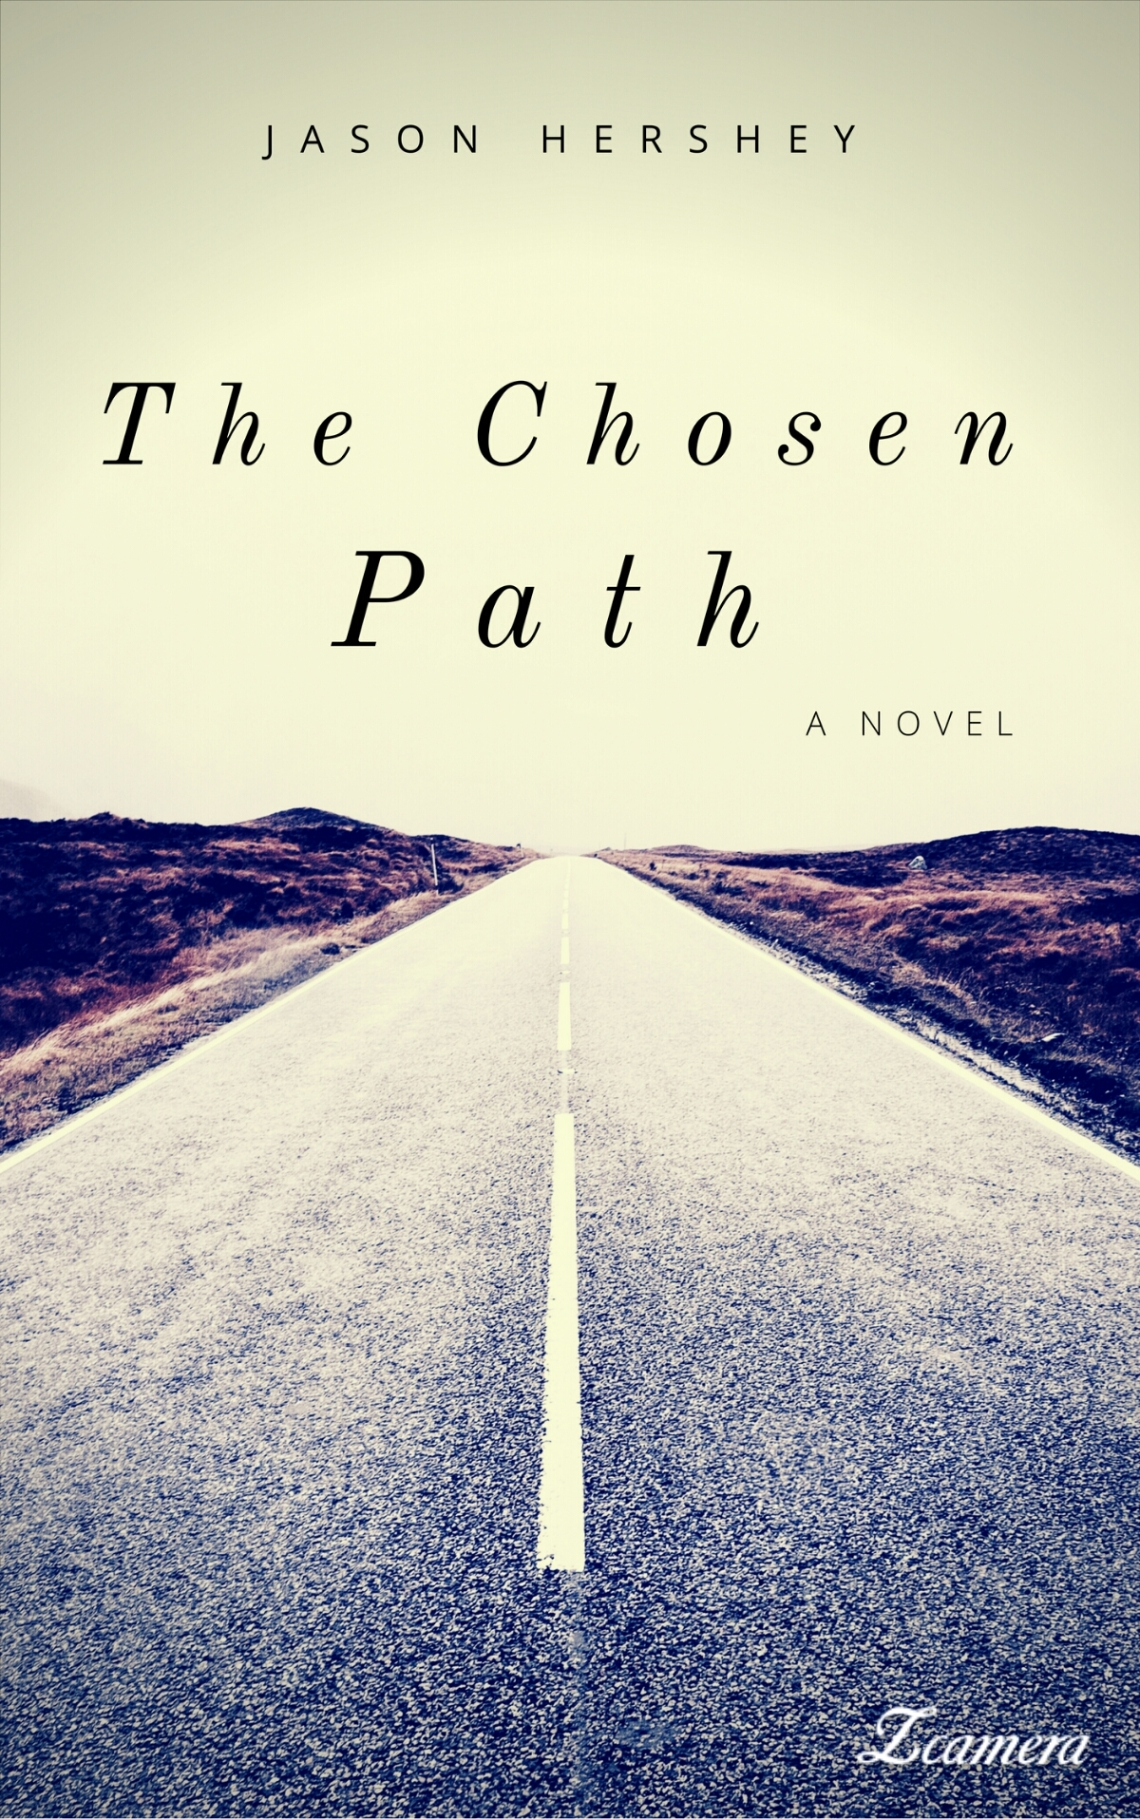 Book Review: The Chosen Path by Jason Hershey